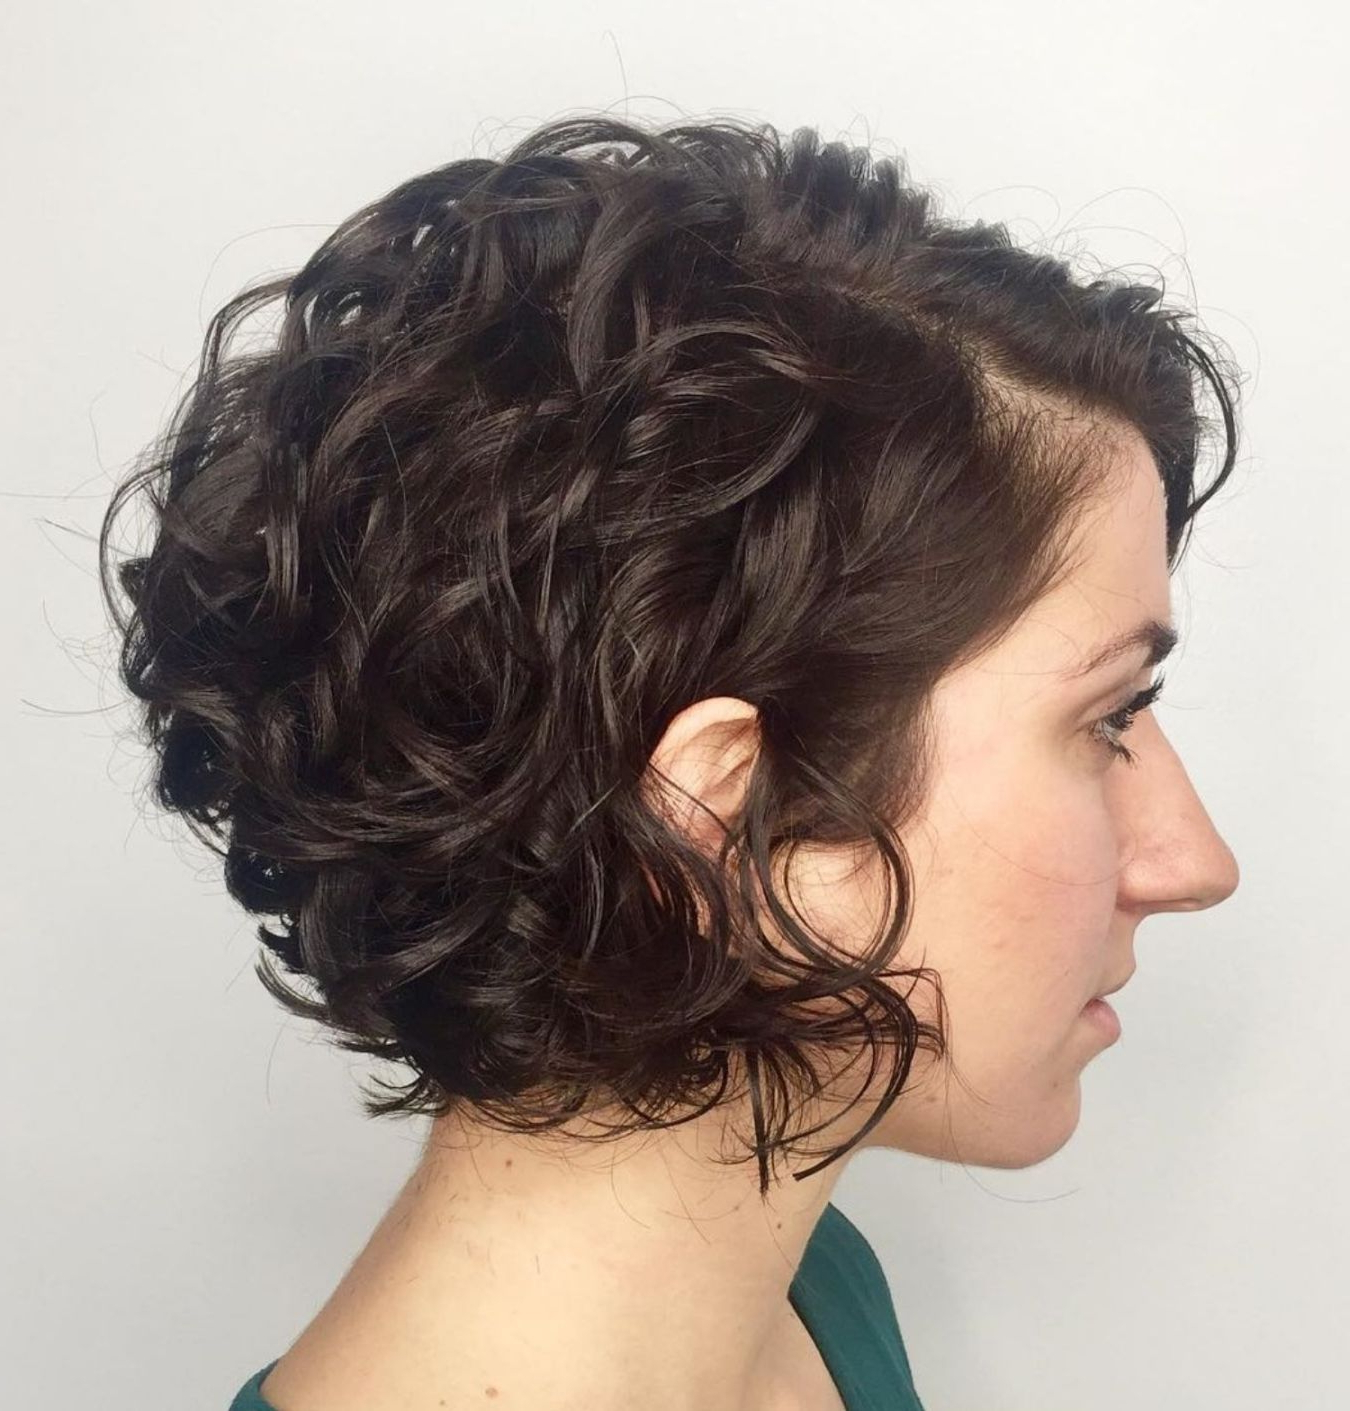 65 Different Versions Of Curly Bob Hairstyle In 2019 | Short With Regard To Simple Side Parted Jaw Length Bob Hairstyles (View 6 of 20)